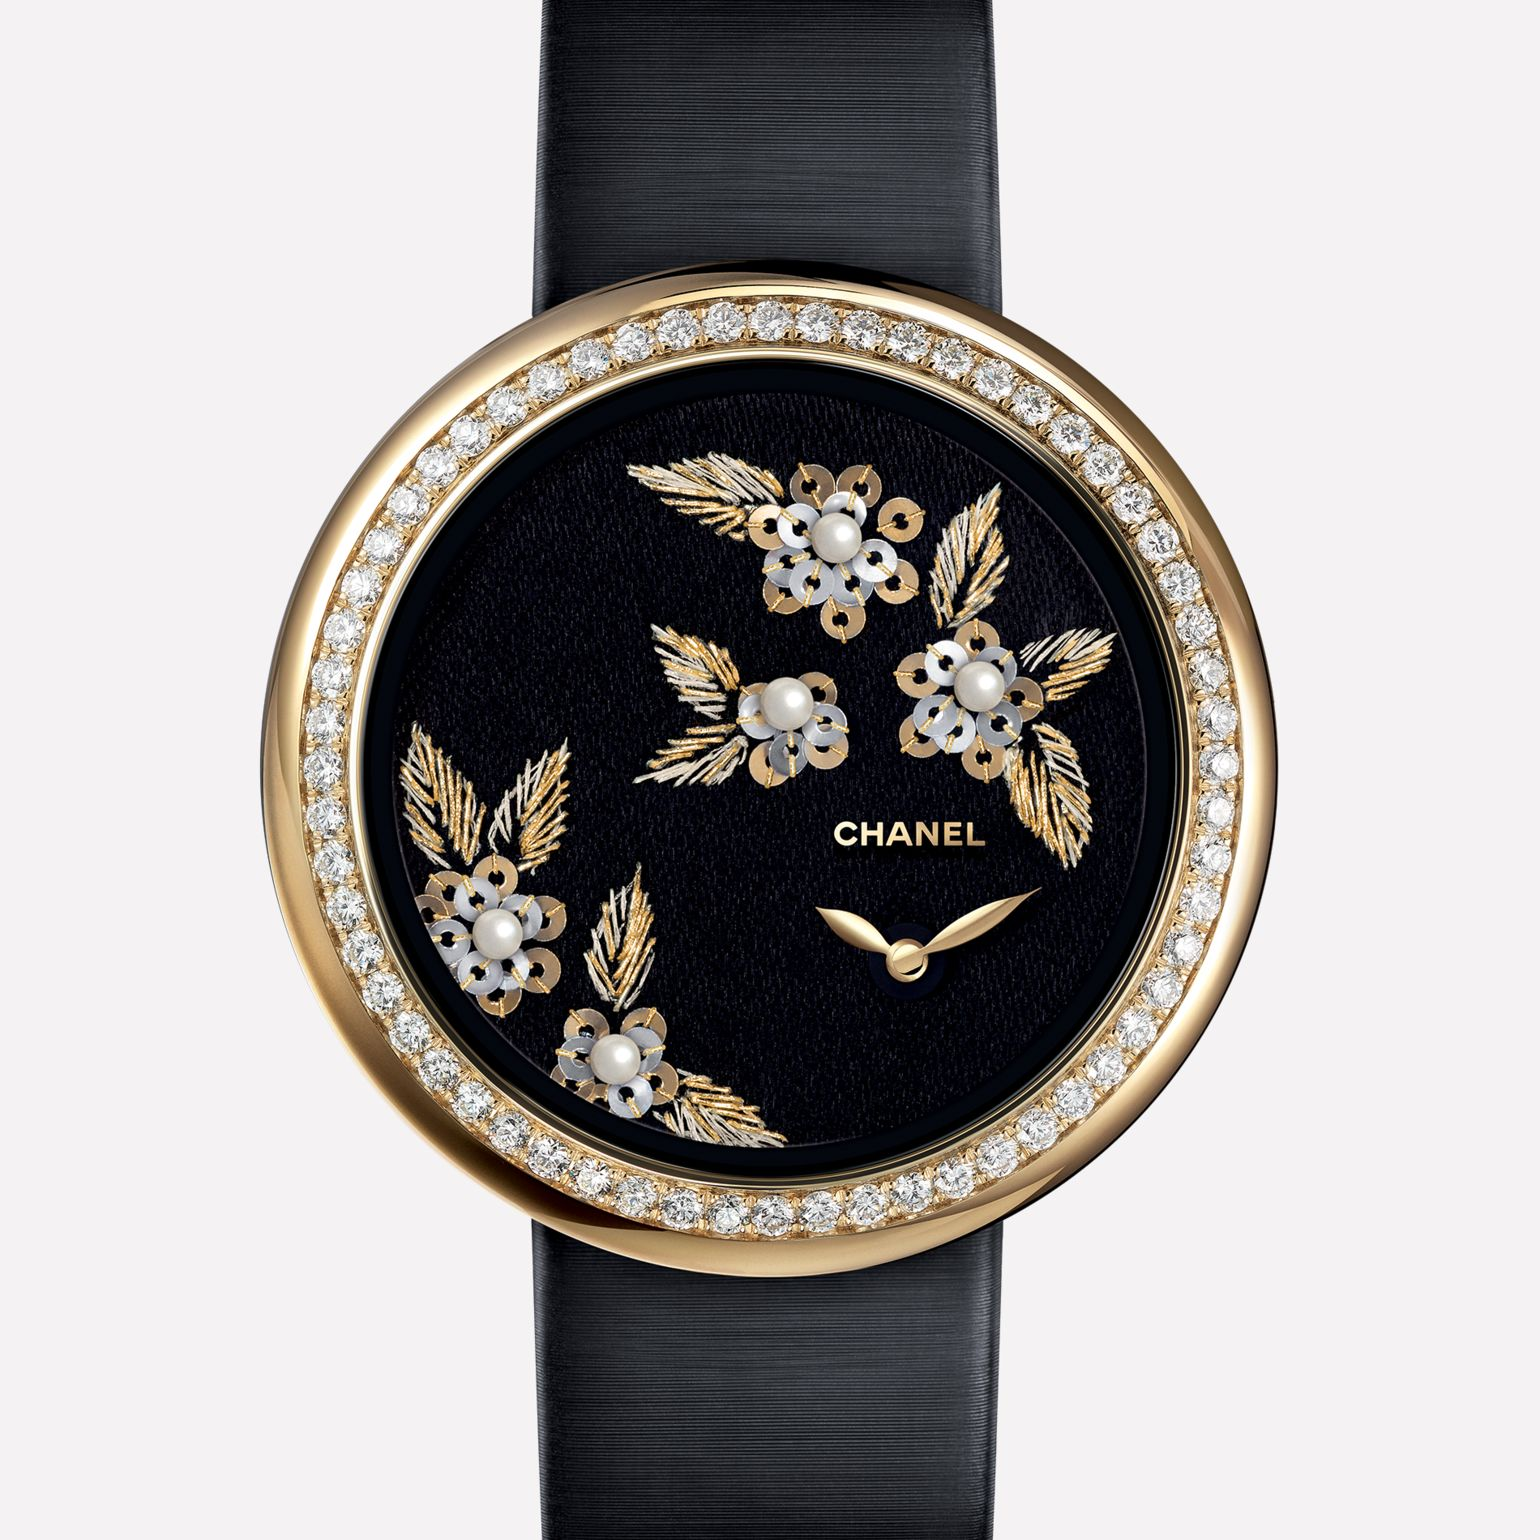 Mademoiselle Privé Watch Camellias in gold thread, fine pearls, and gold spangles - Lesage embroidery